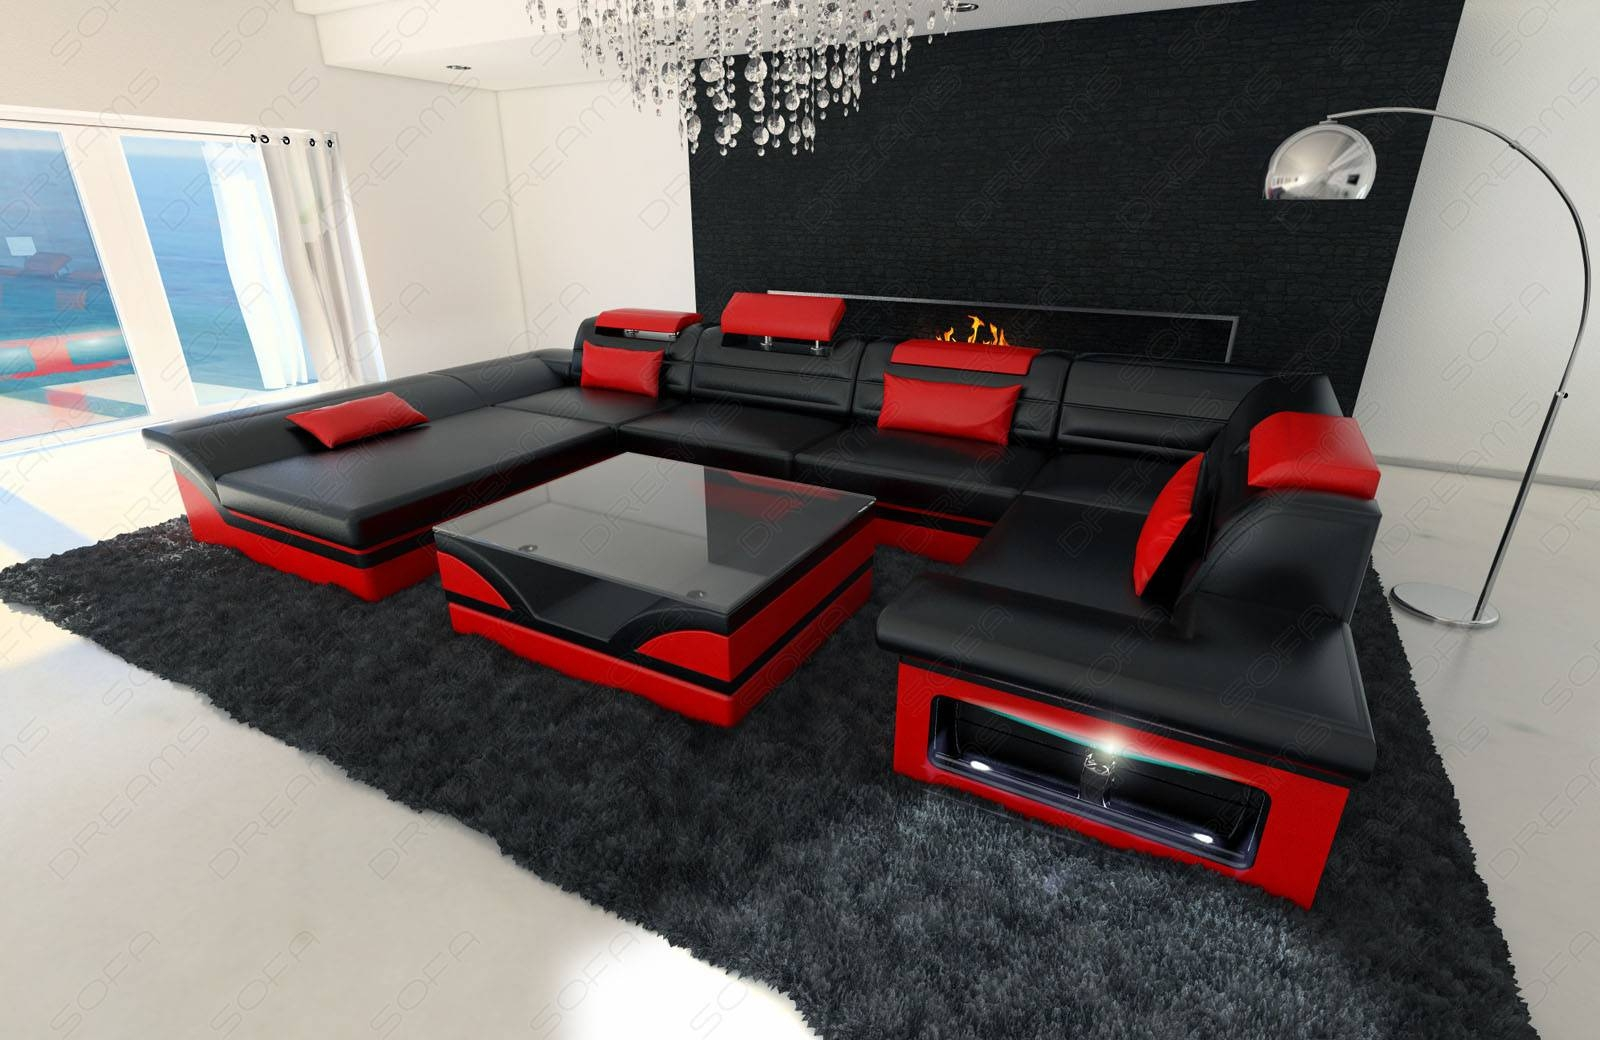 Big Leather Sofa Enzo With Led Lights Black Red | Ebay pertaining to Black and Red Sofas (Image 5 of 15)